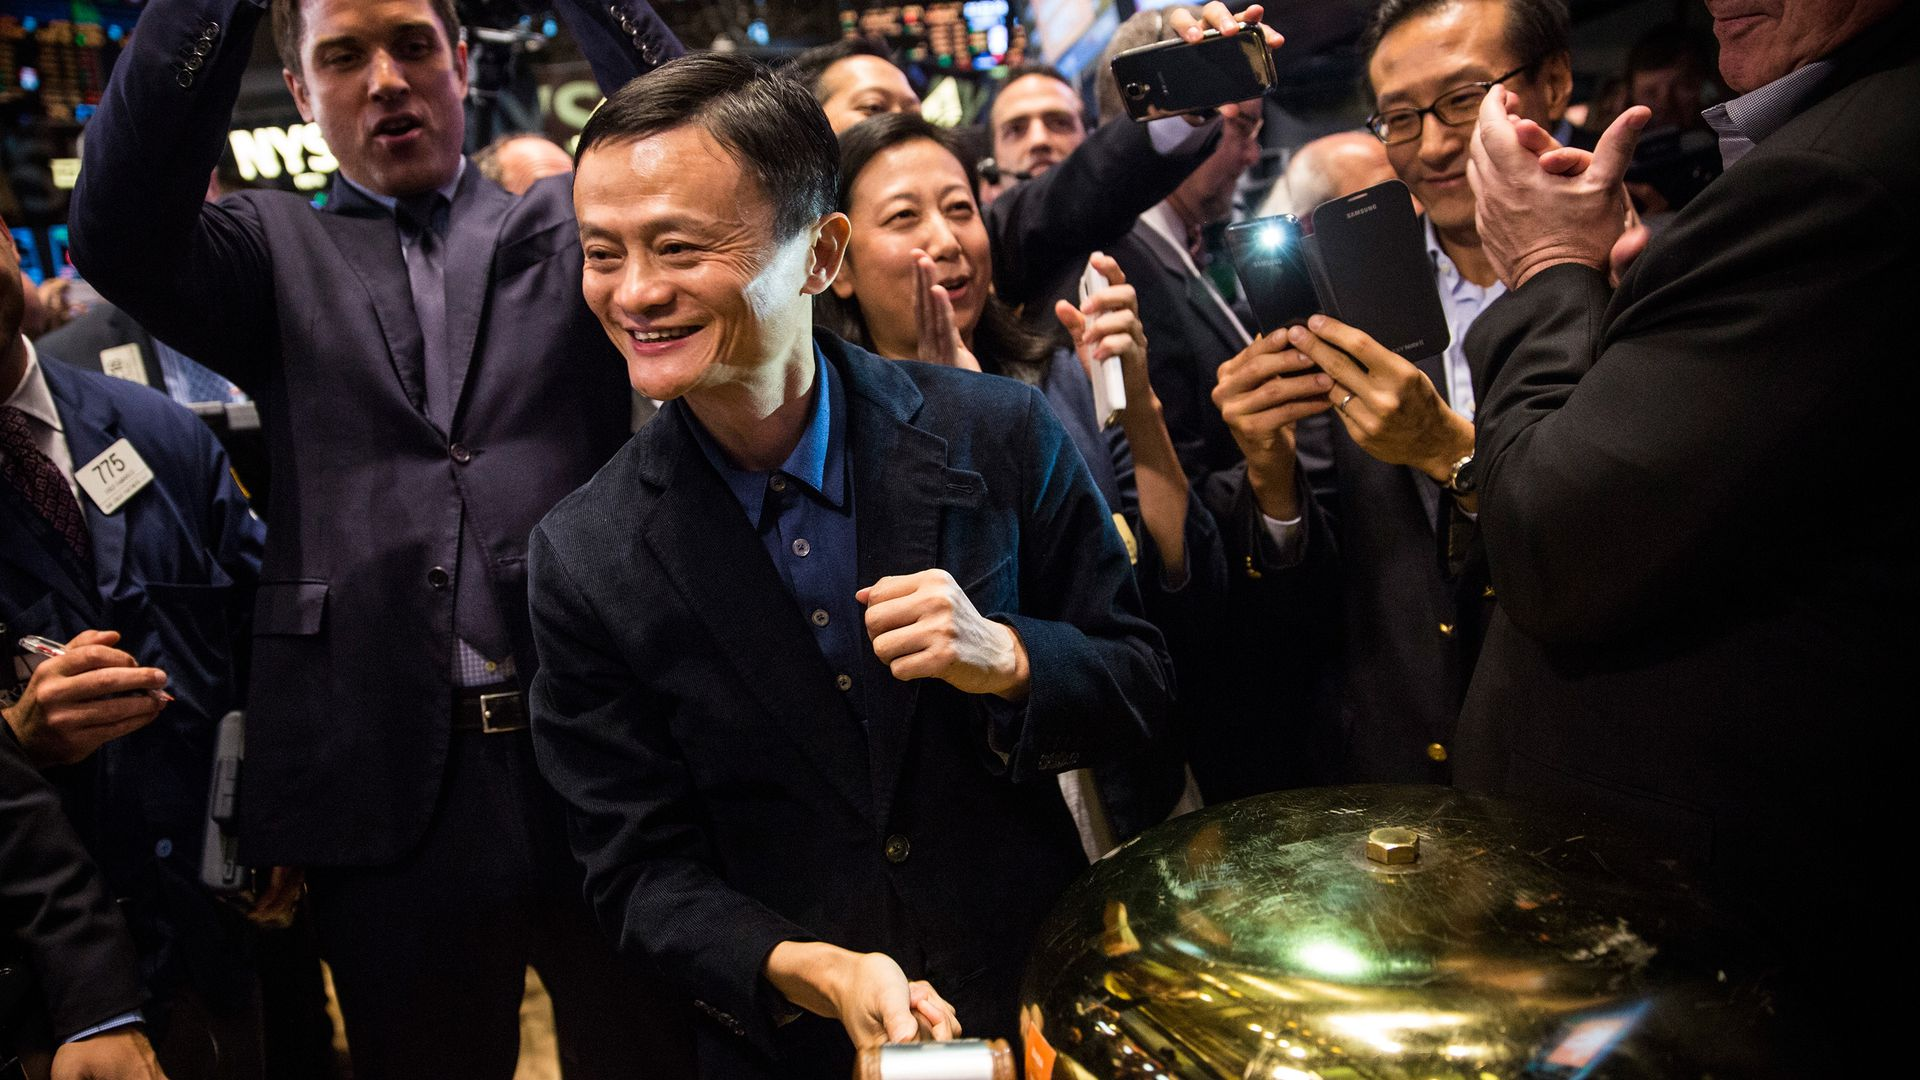 Jack Ma rings a bell, surrounded by cheering people